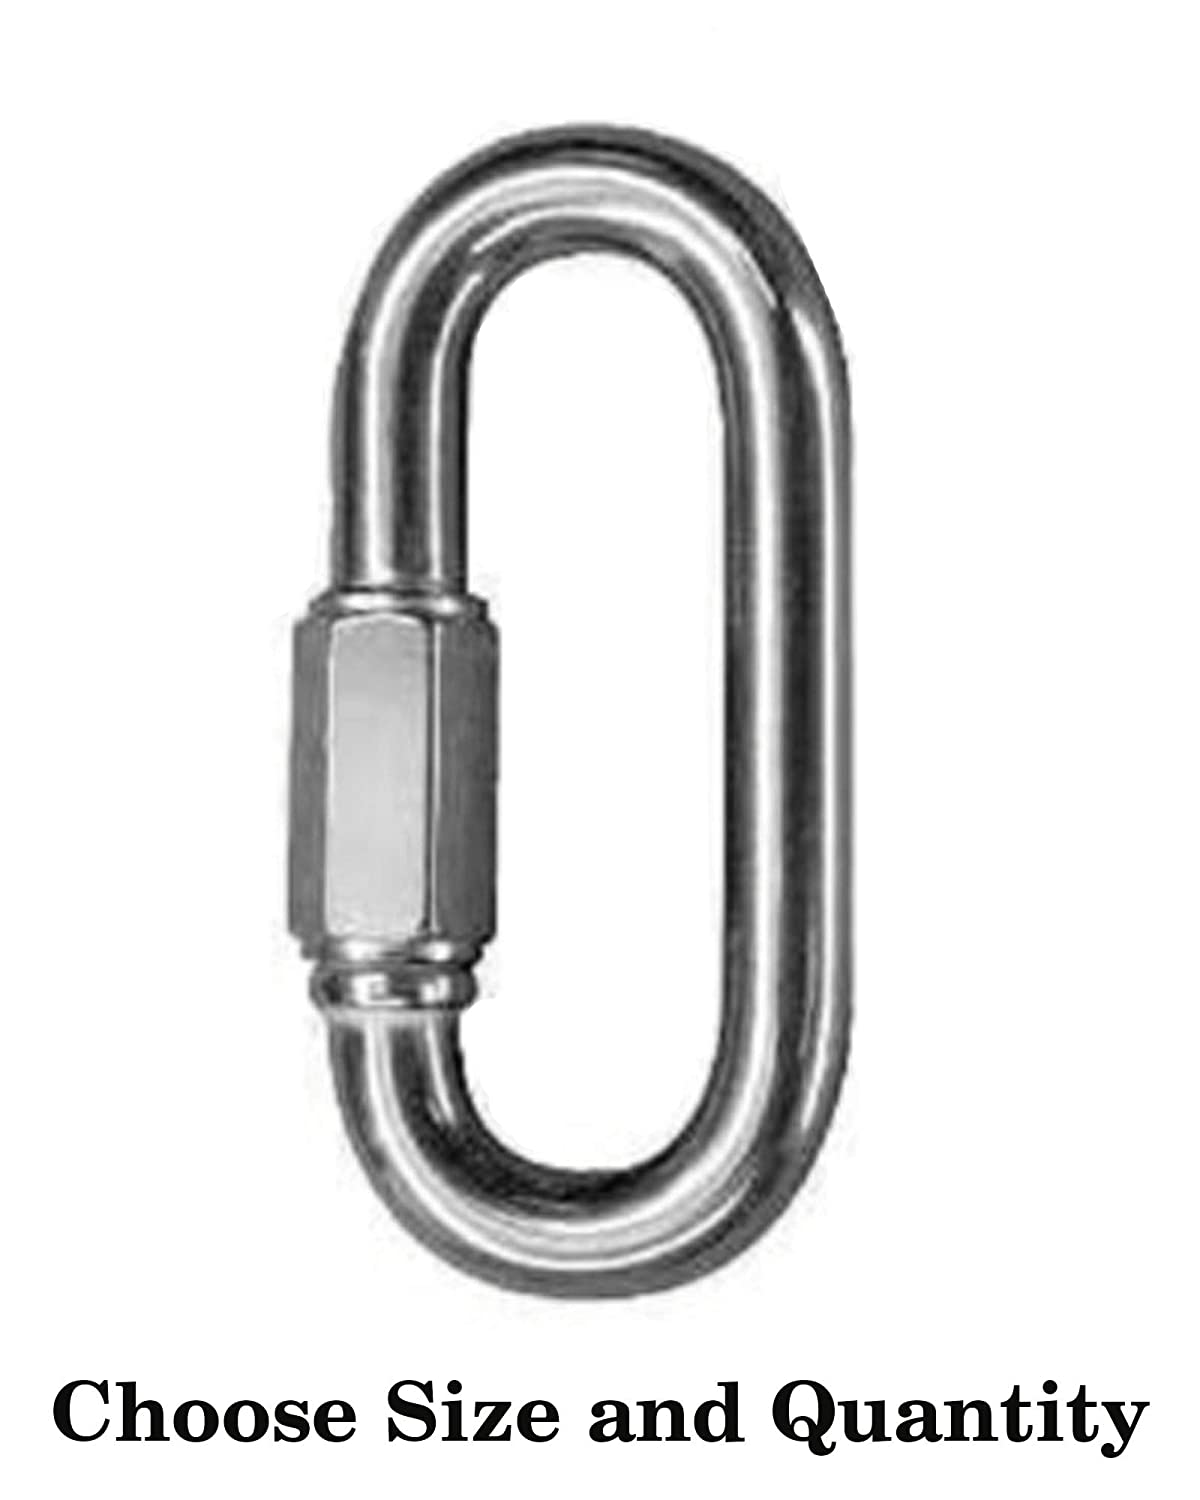 D Shape Locking Carabiner 10, 1//8 Zinc Plated Quick Link Camp Oval Quick Link Chain Connector Screw Lock Carabiner Key Ring Oval Locking Carabiner Screw Lock Carabiner